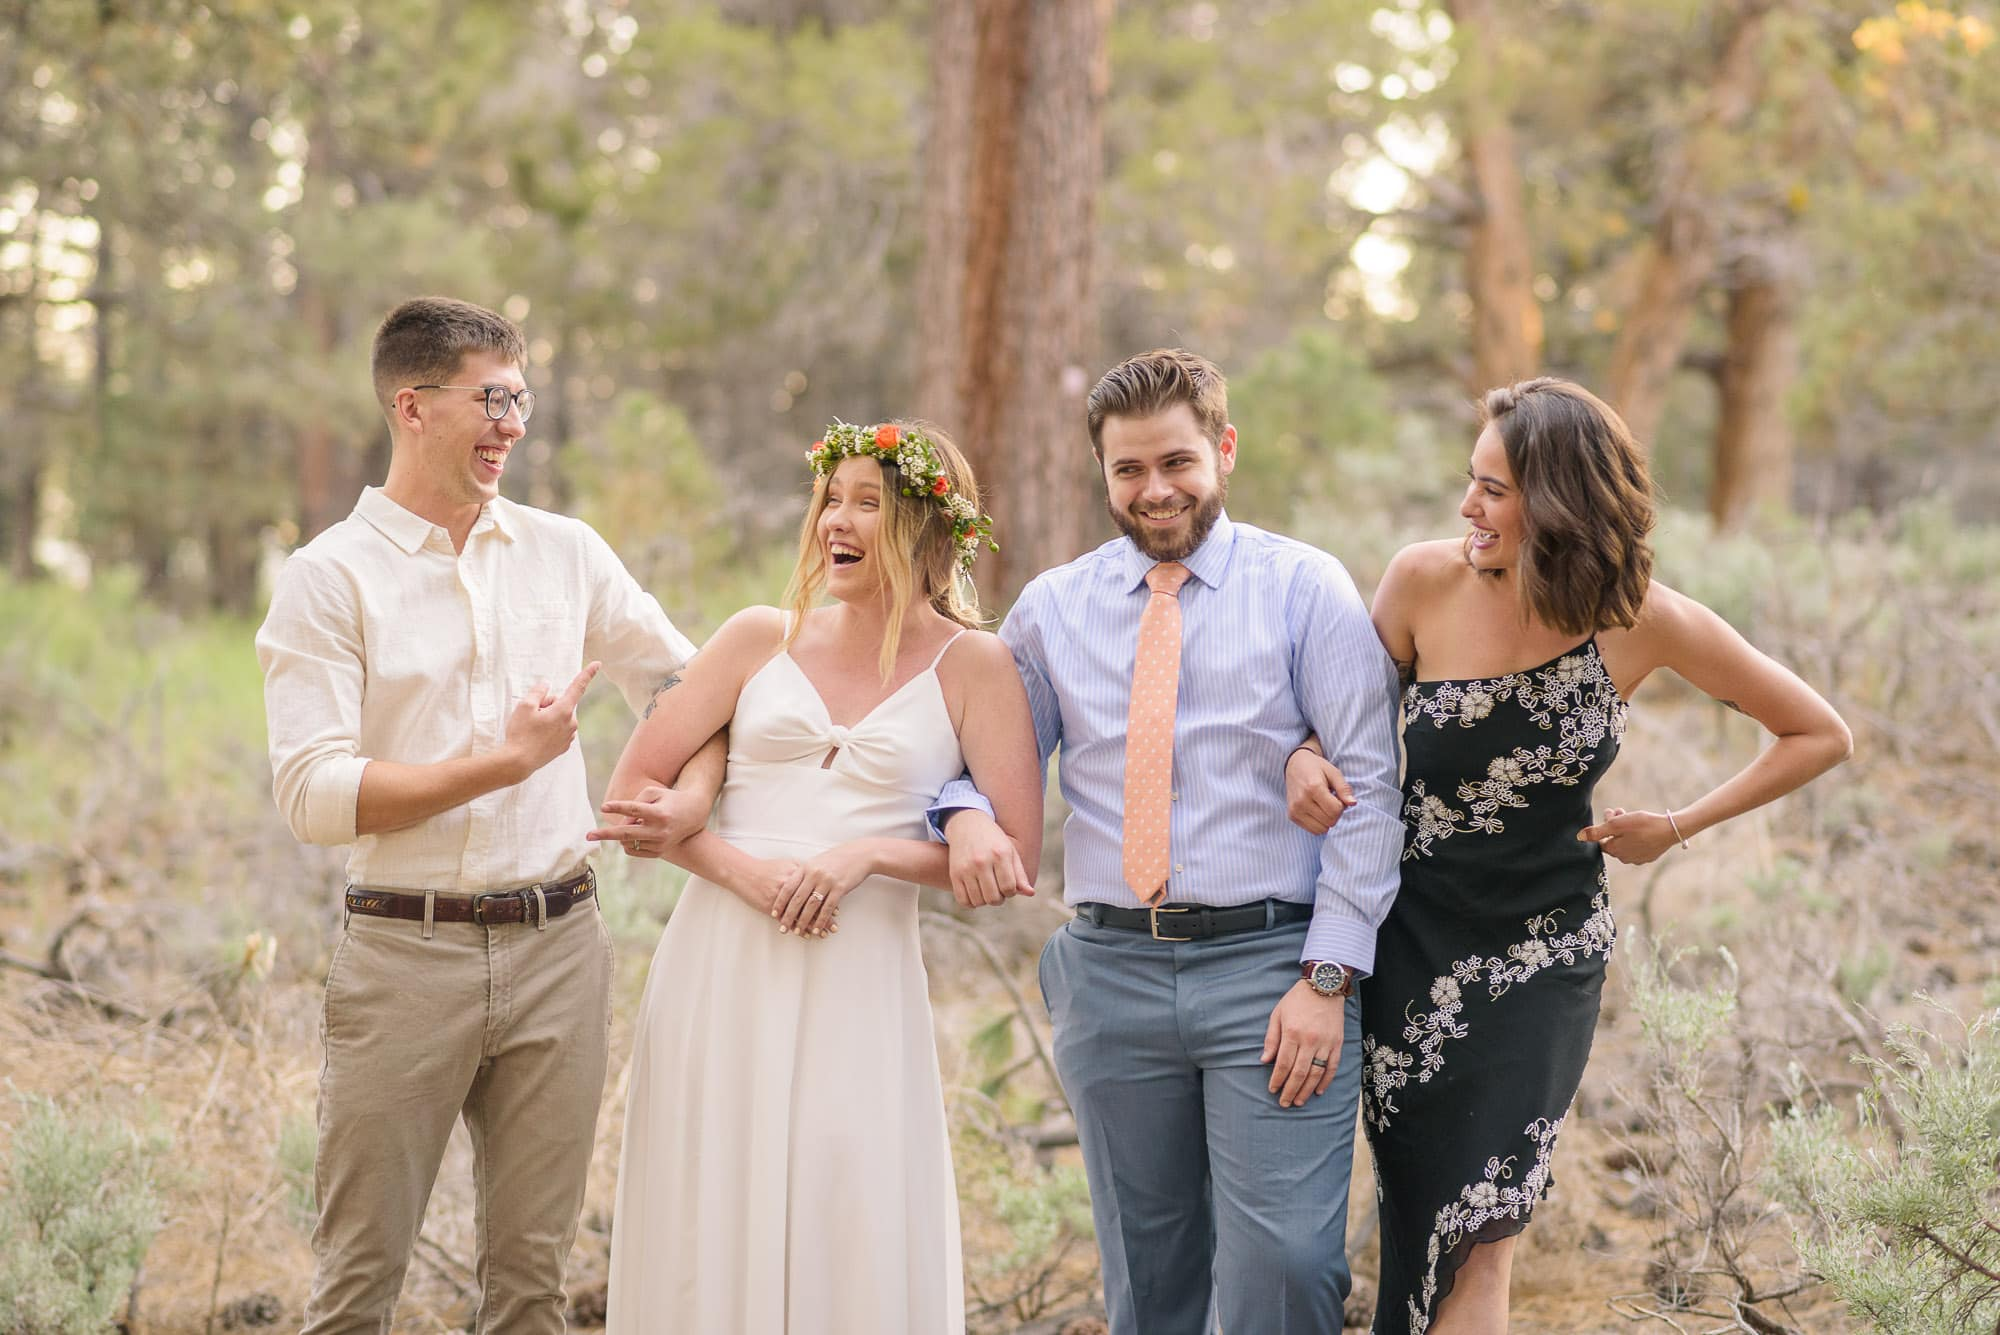 043_Alan_and_Heidi_Kensey_Josh_Big_Bear_Elopement